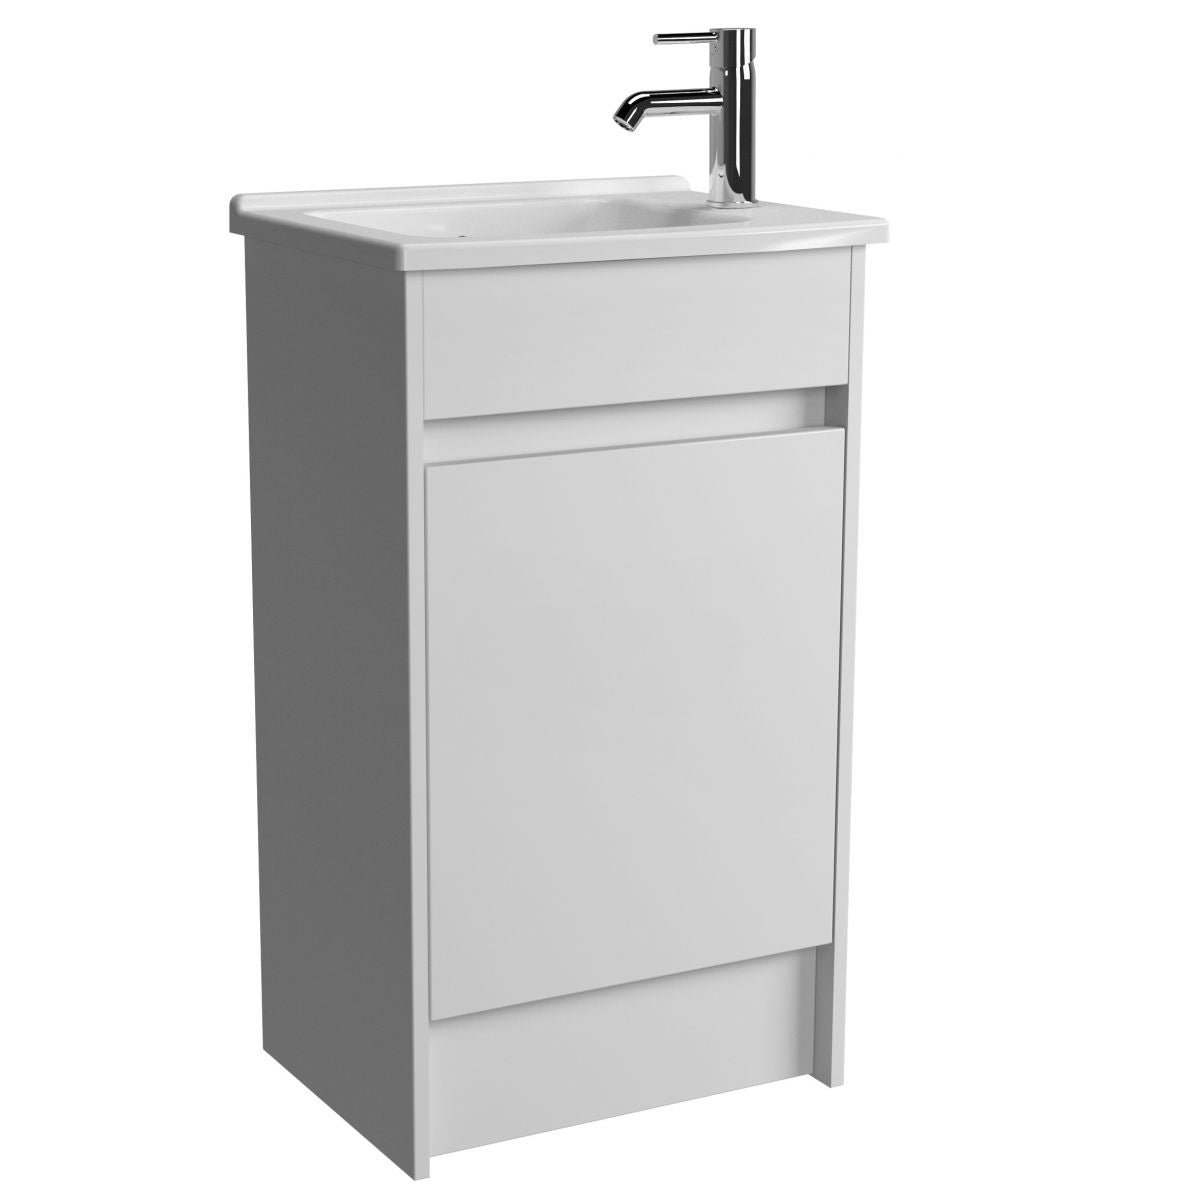 S50 500mm Floor Standing Unit and basin - blueskybathrooms